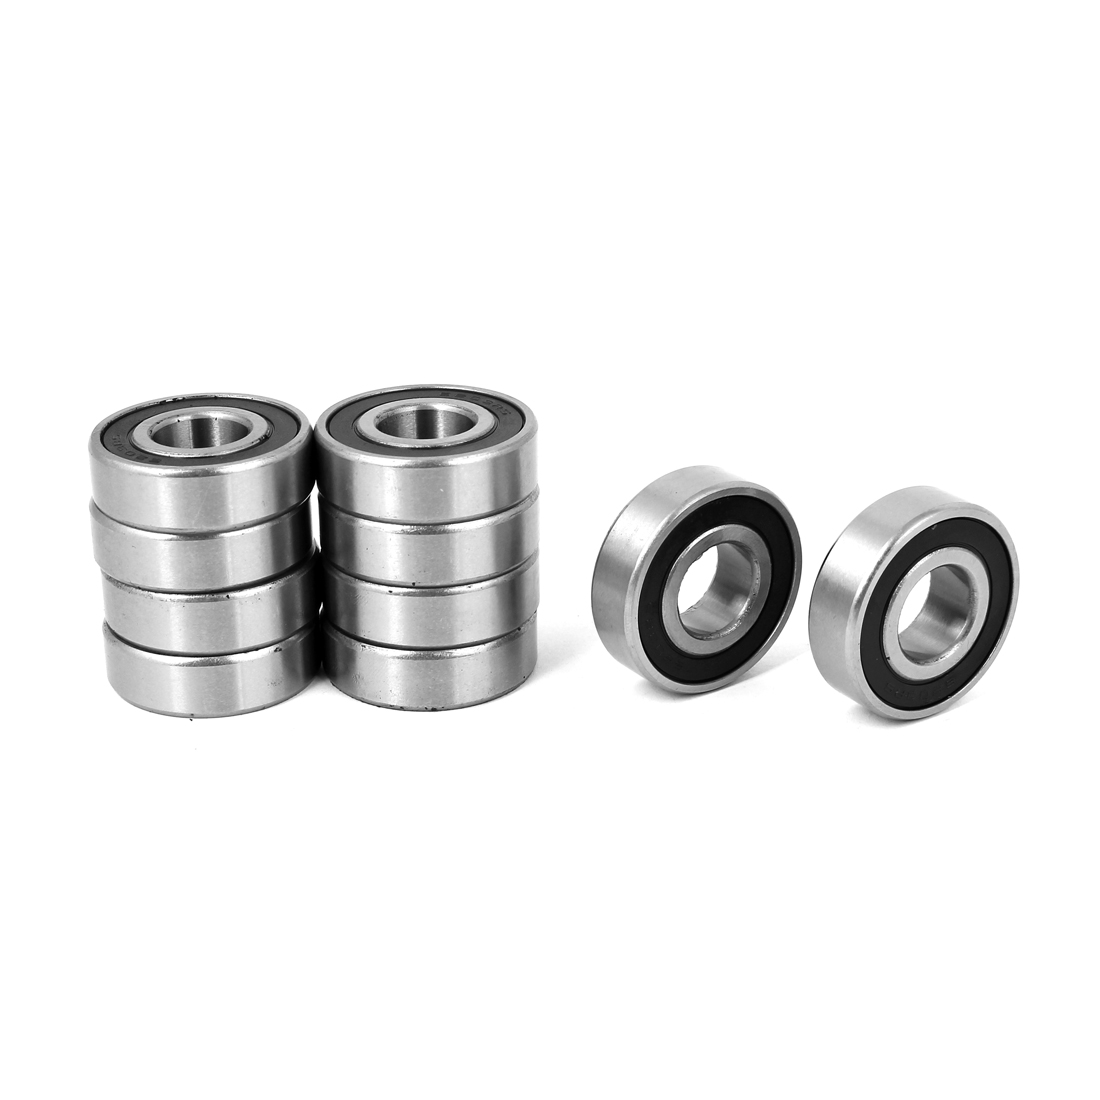 17mm x 40mm x 12mm Deep Groove Radial Ball Bearings 6203RS 10 Pcs